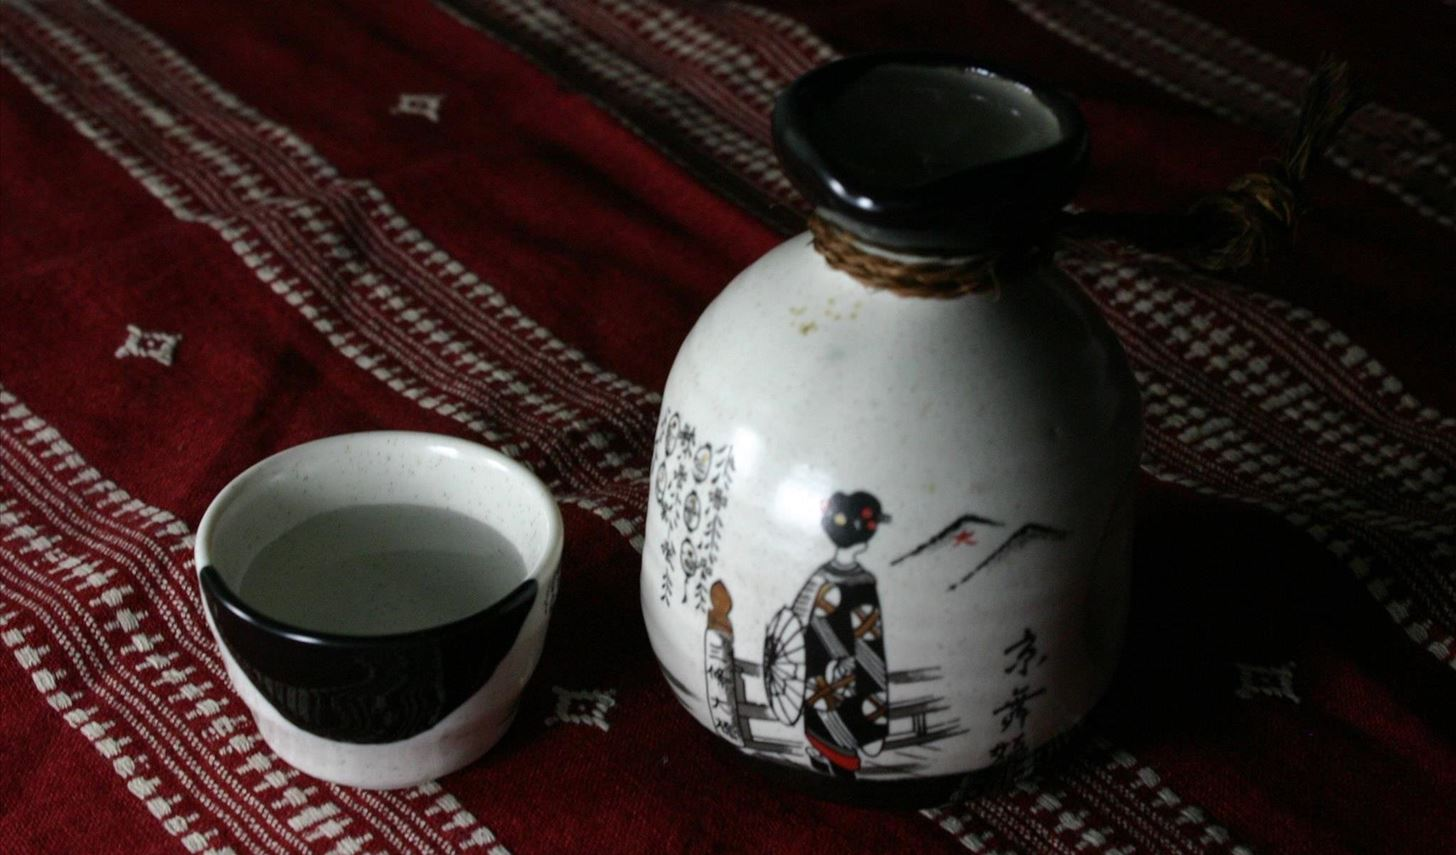 Skip Home-Brewed Beer: Sake Is Easier to Make & Just as Good